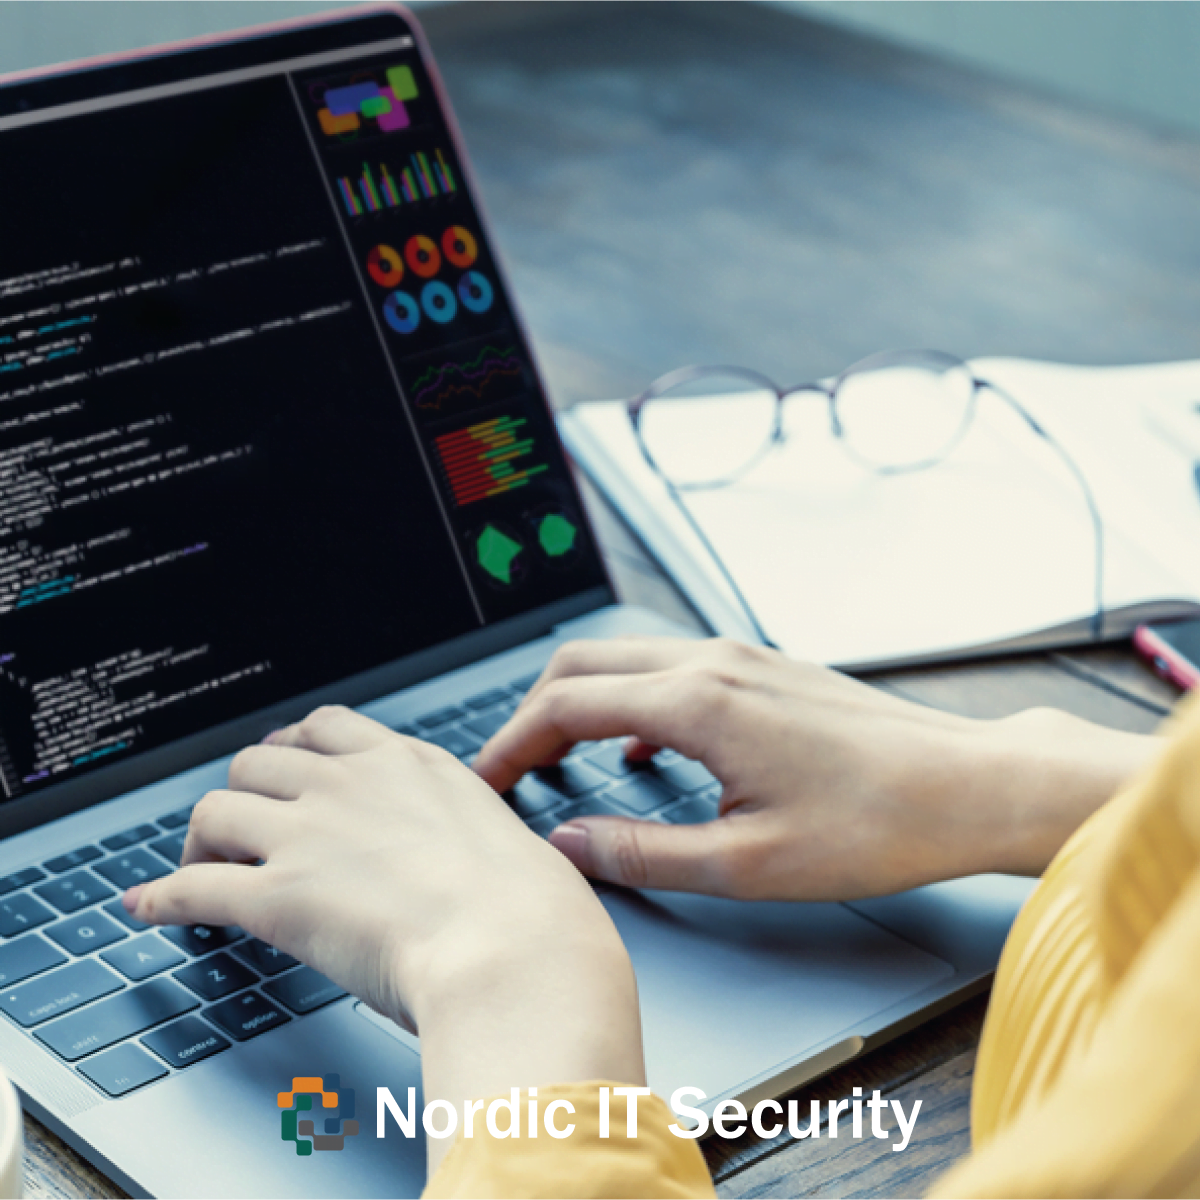 Cybercriminals Actively Targeting Work-From-Home Employees By All Possible Means - Blog post from Nordic IT Security Forum 2020